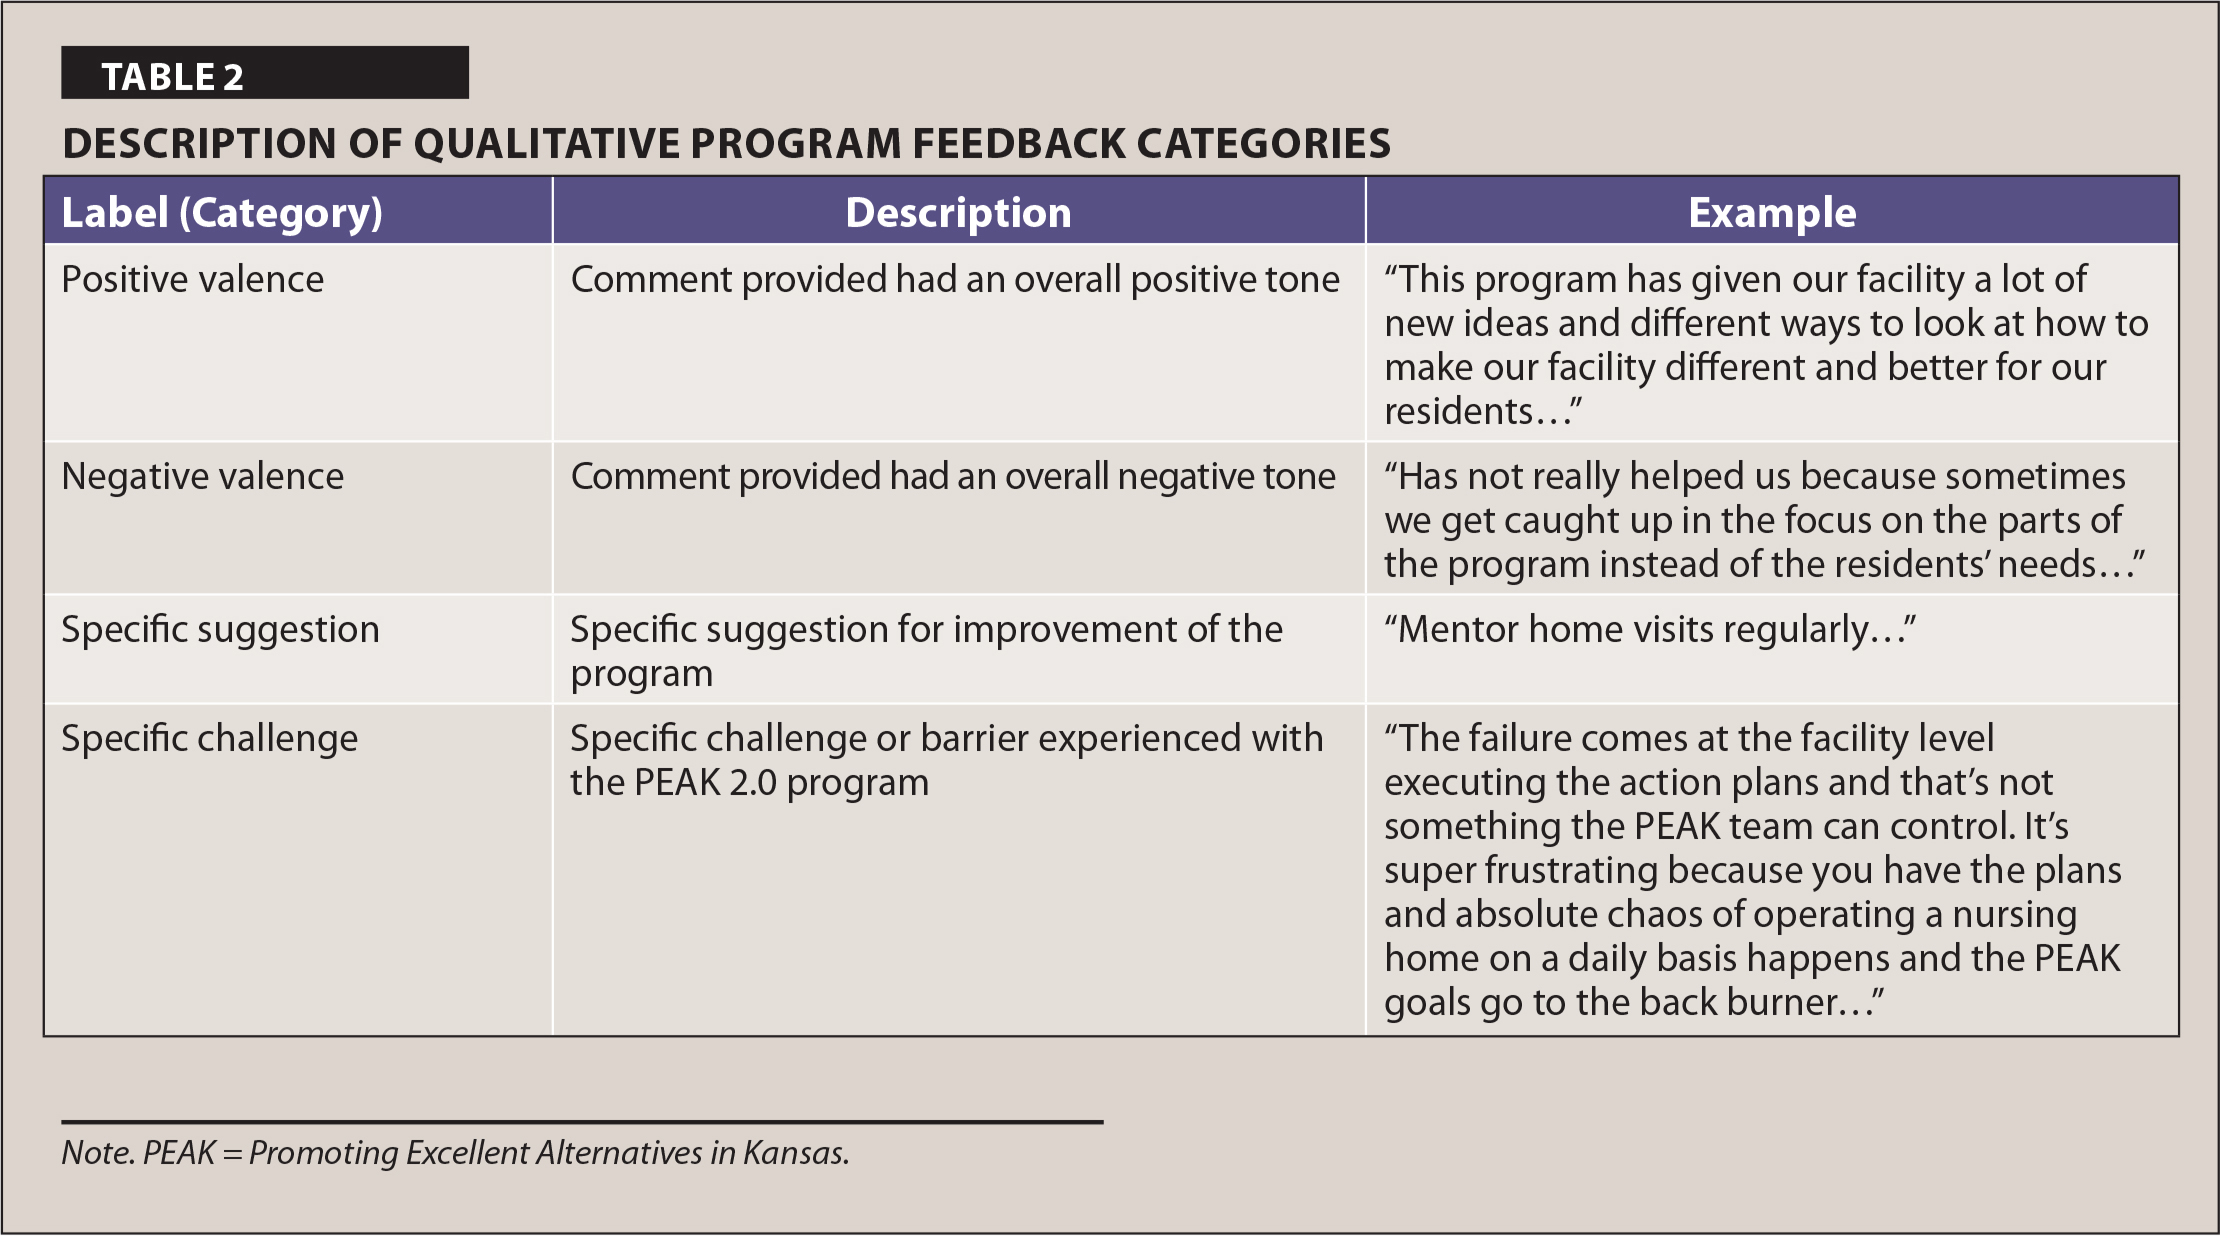 Description of Qualitative Program Feedback Categories